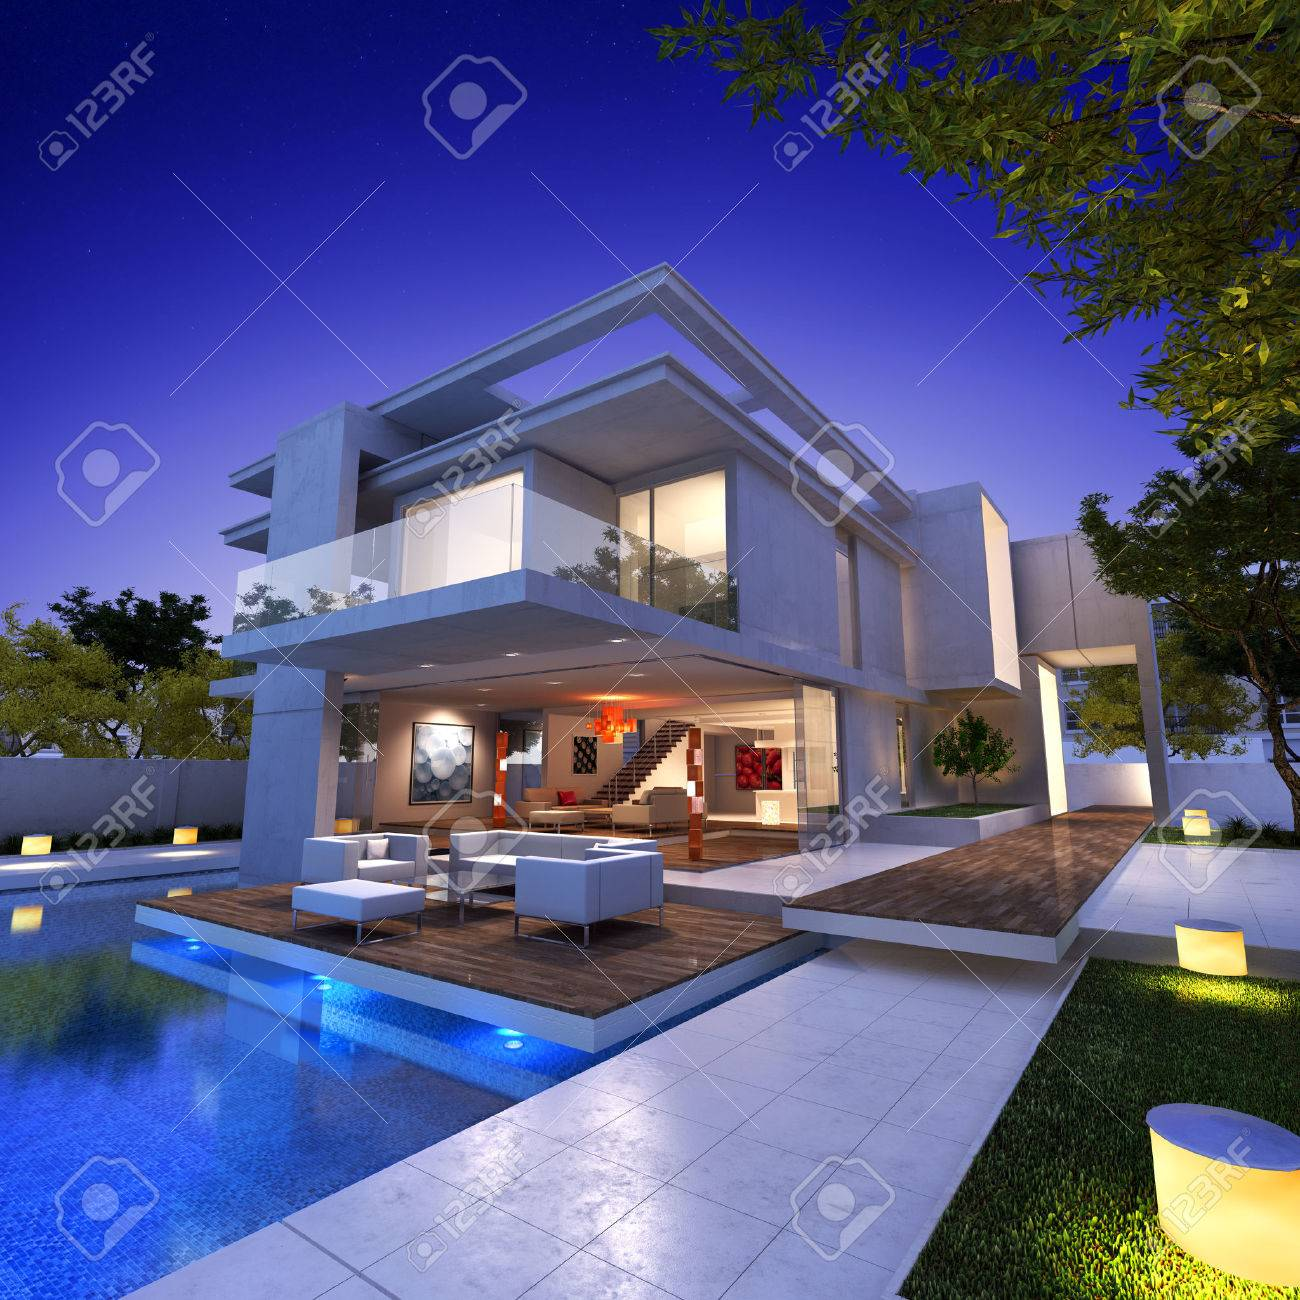 External View Of A Contemporary House With Pool At Dusk Stock Photo    27339984